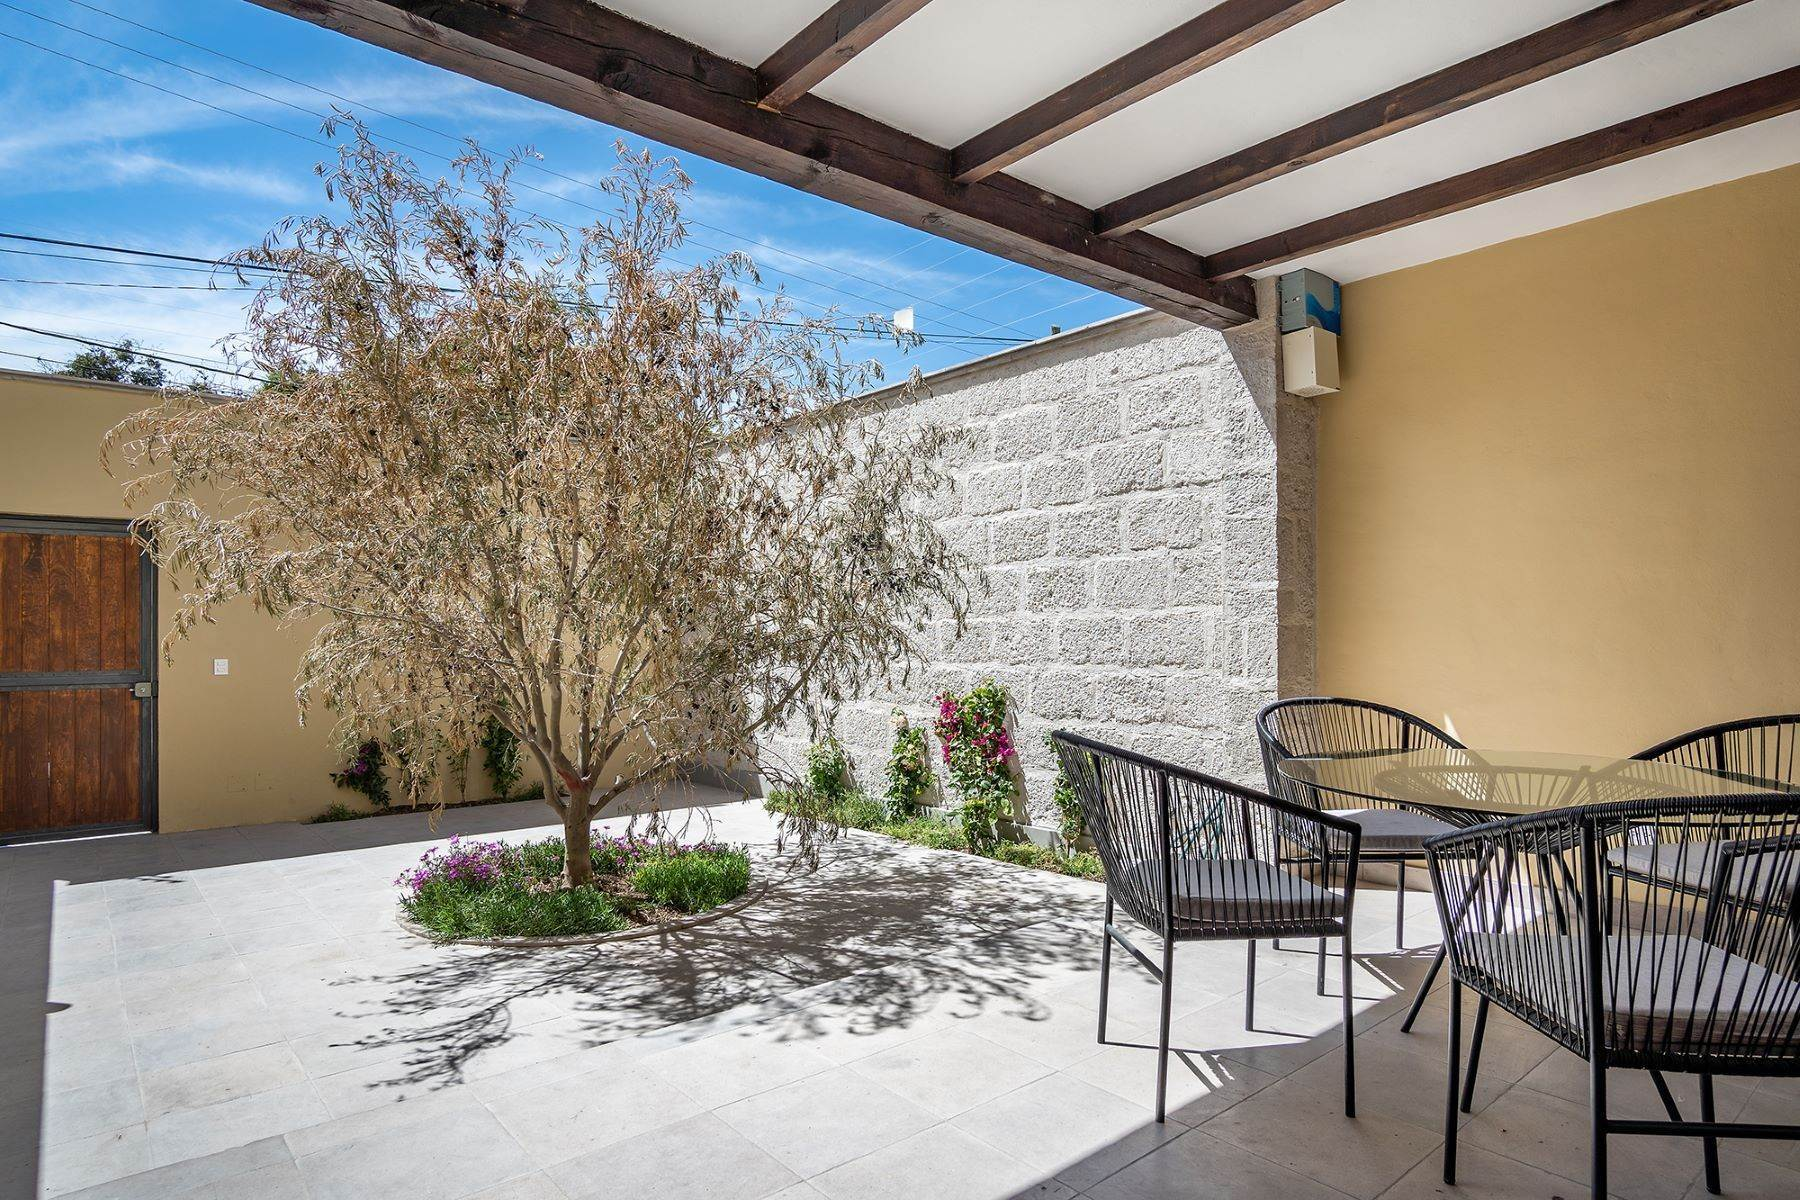 3. Single Family Homes for Sale at CASA DEL LLANO Barrio de la Palmita San Miguel De Allende, Guanajuato 37774 Mexico